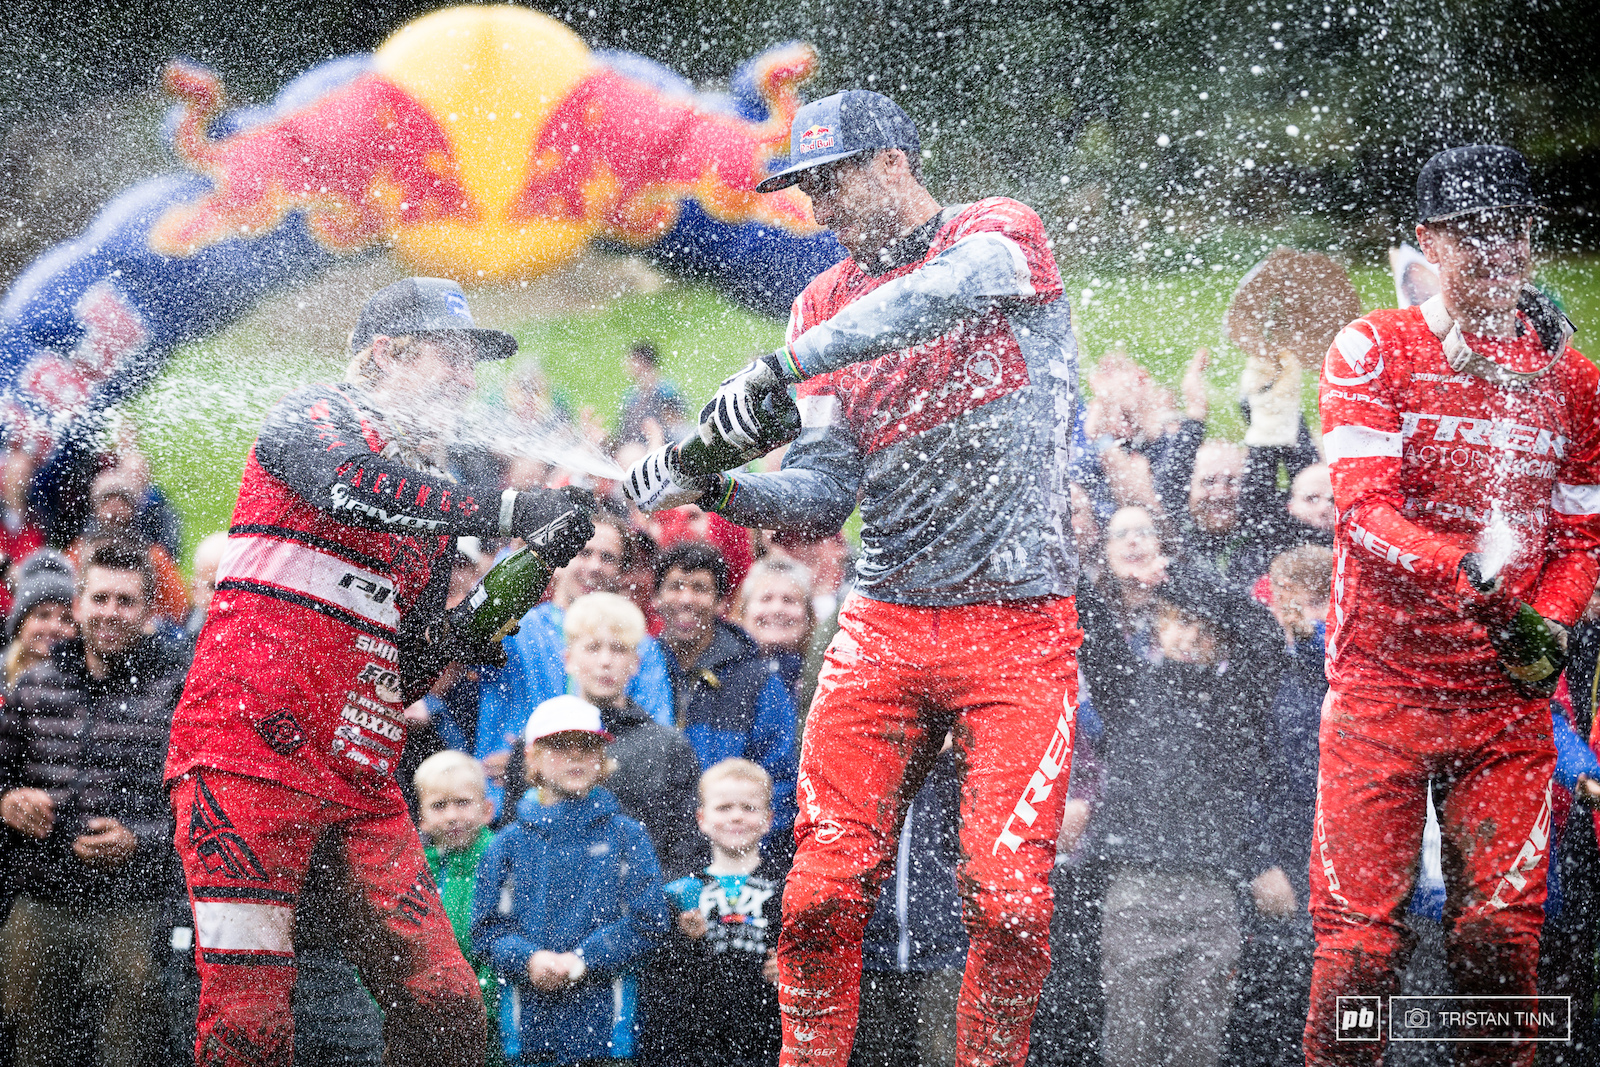 A champagne shower for previous winner Kerr